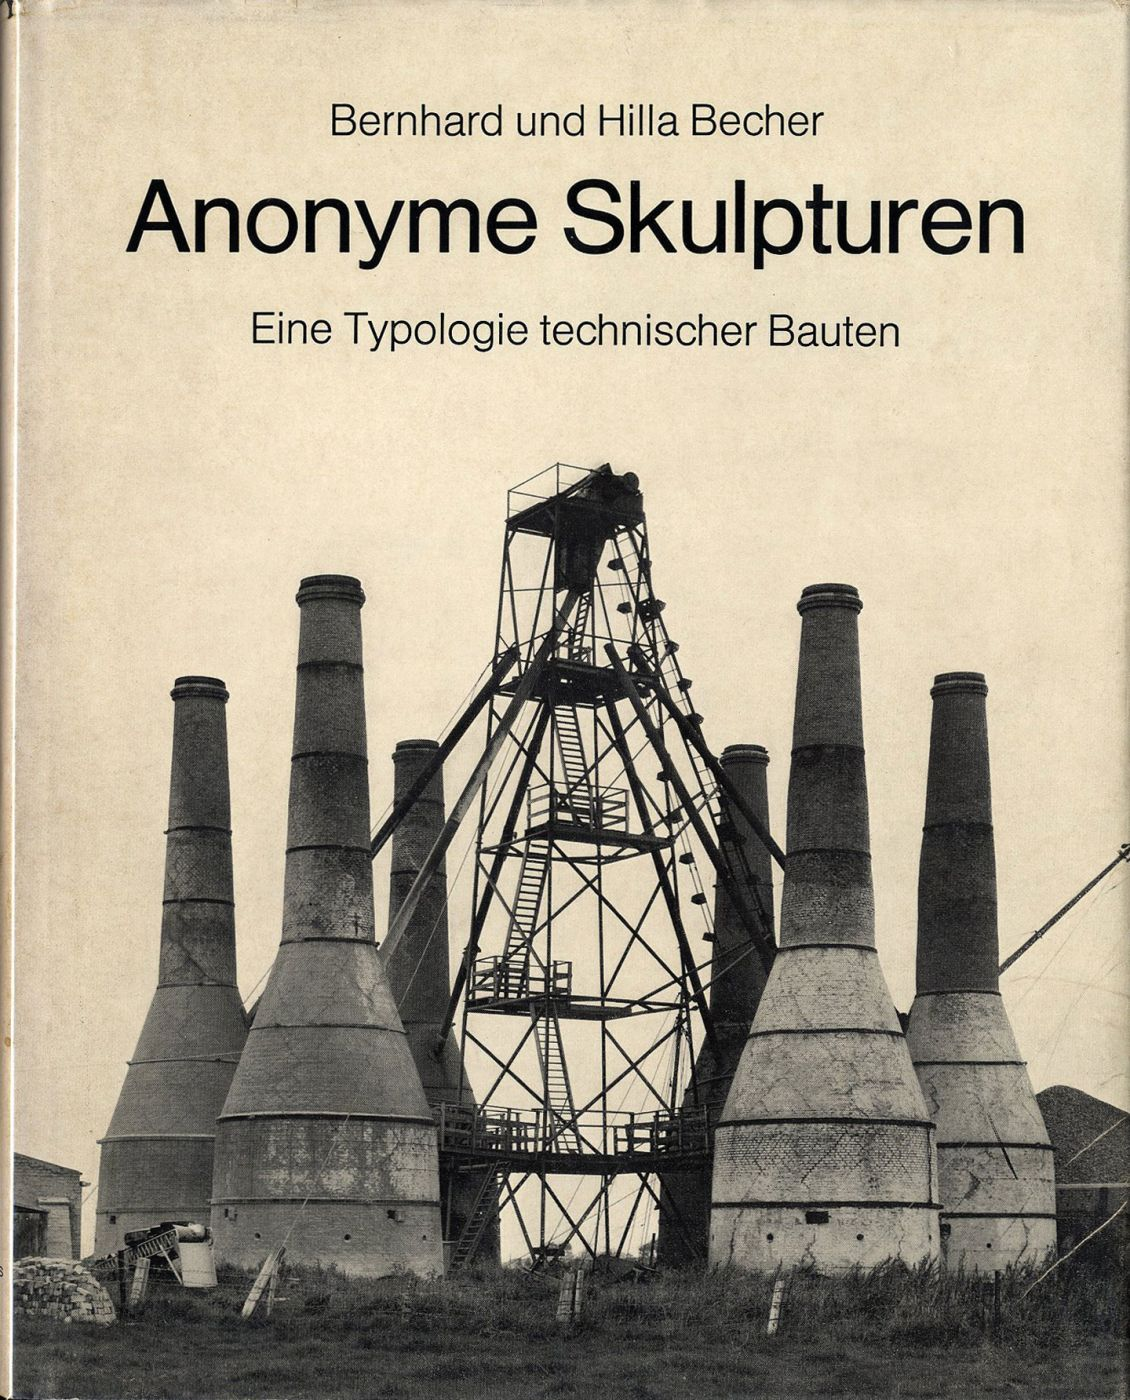 Bernd and Hiller Becher industrial archaeology